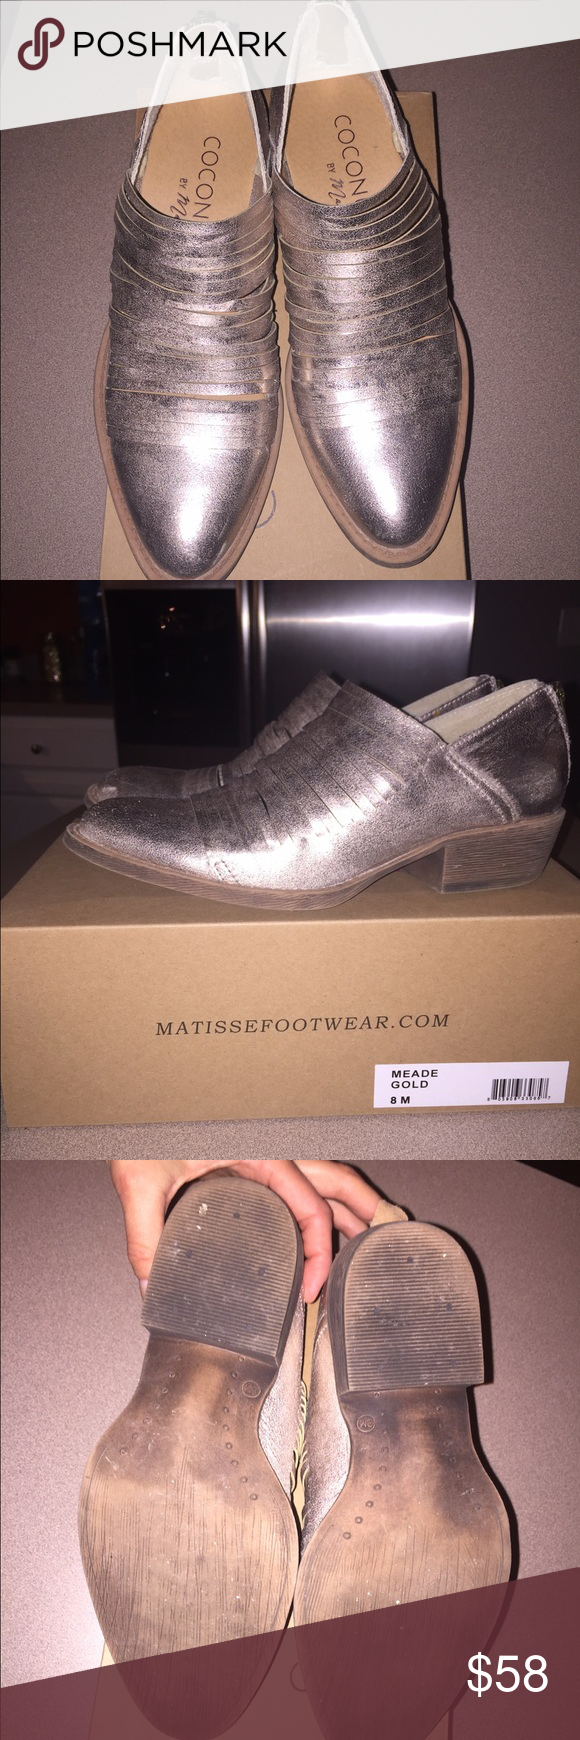 Coconuts By Matisse Gold Meade Booties Size 8 These booties are true to size/a tad small (I typically wear 8-8.5 and the 8 fits great). Super cool look and comfortable! Only worn a few times, in great condition. Comes with original box. Coconuts by Matisse Shoes Ankle Boots & Booties